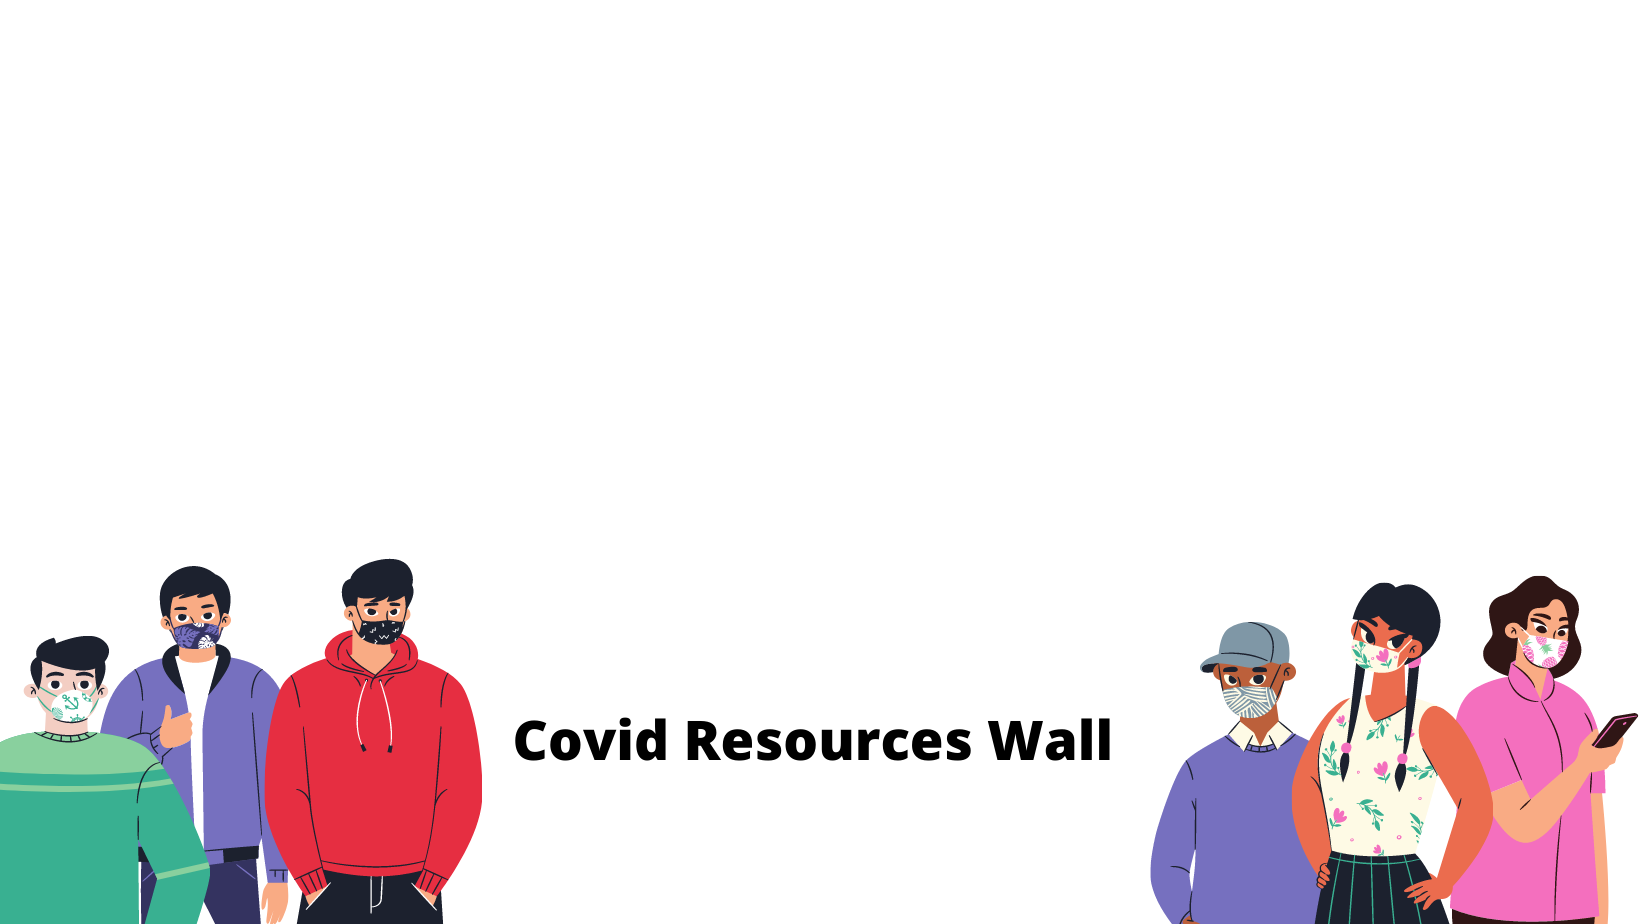 Covid Resources Wall